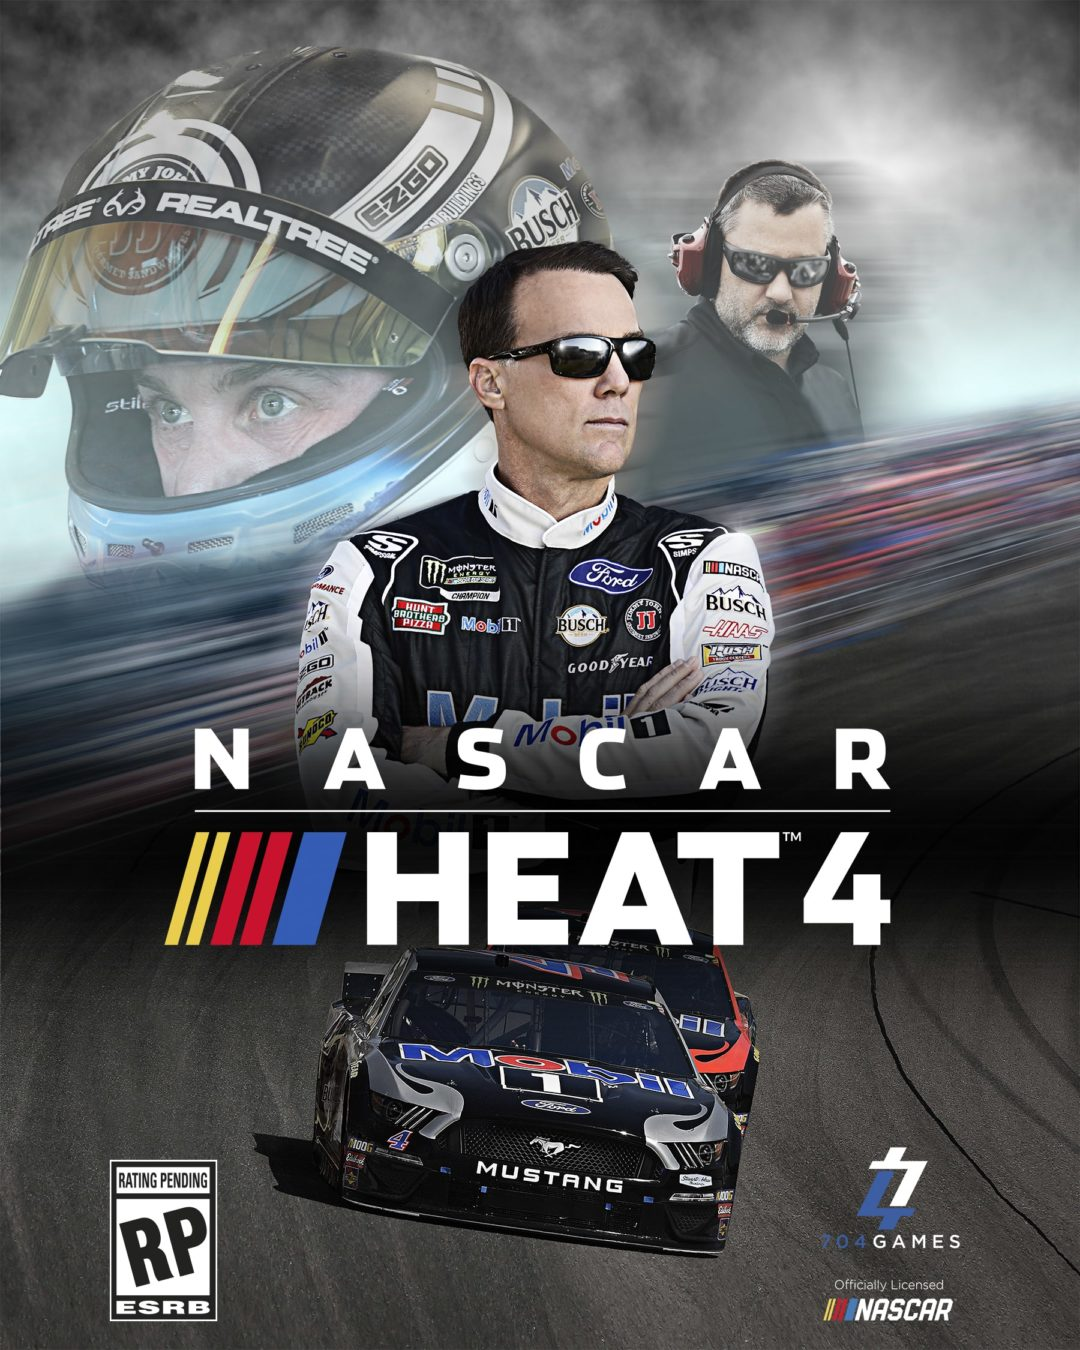 A look at the official box art for NASCAR Heat 4